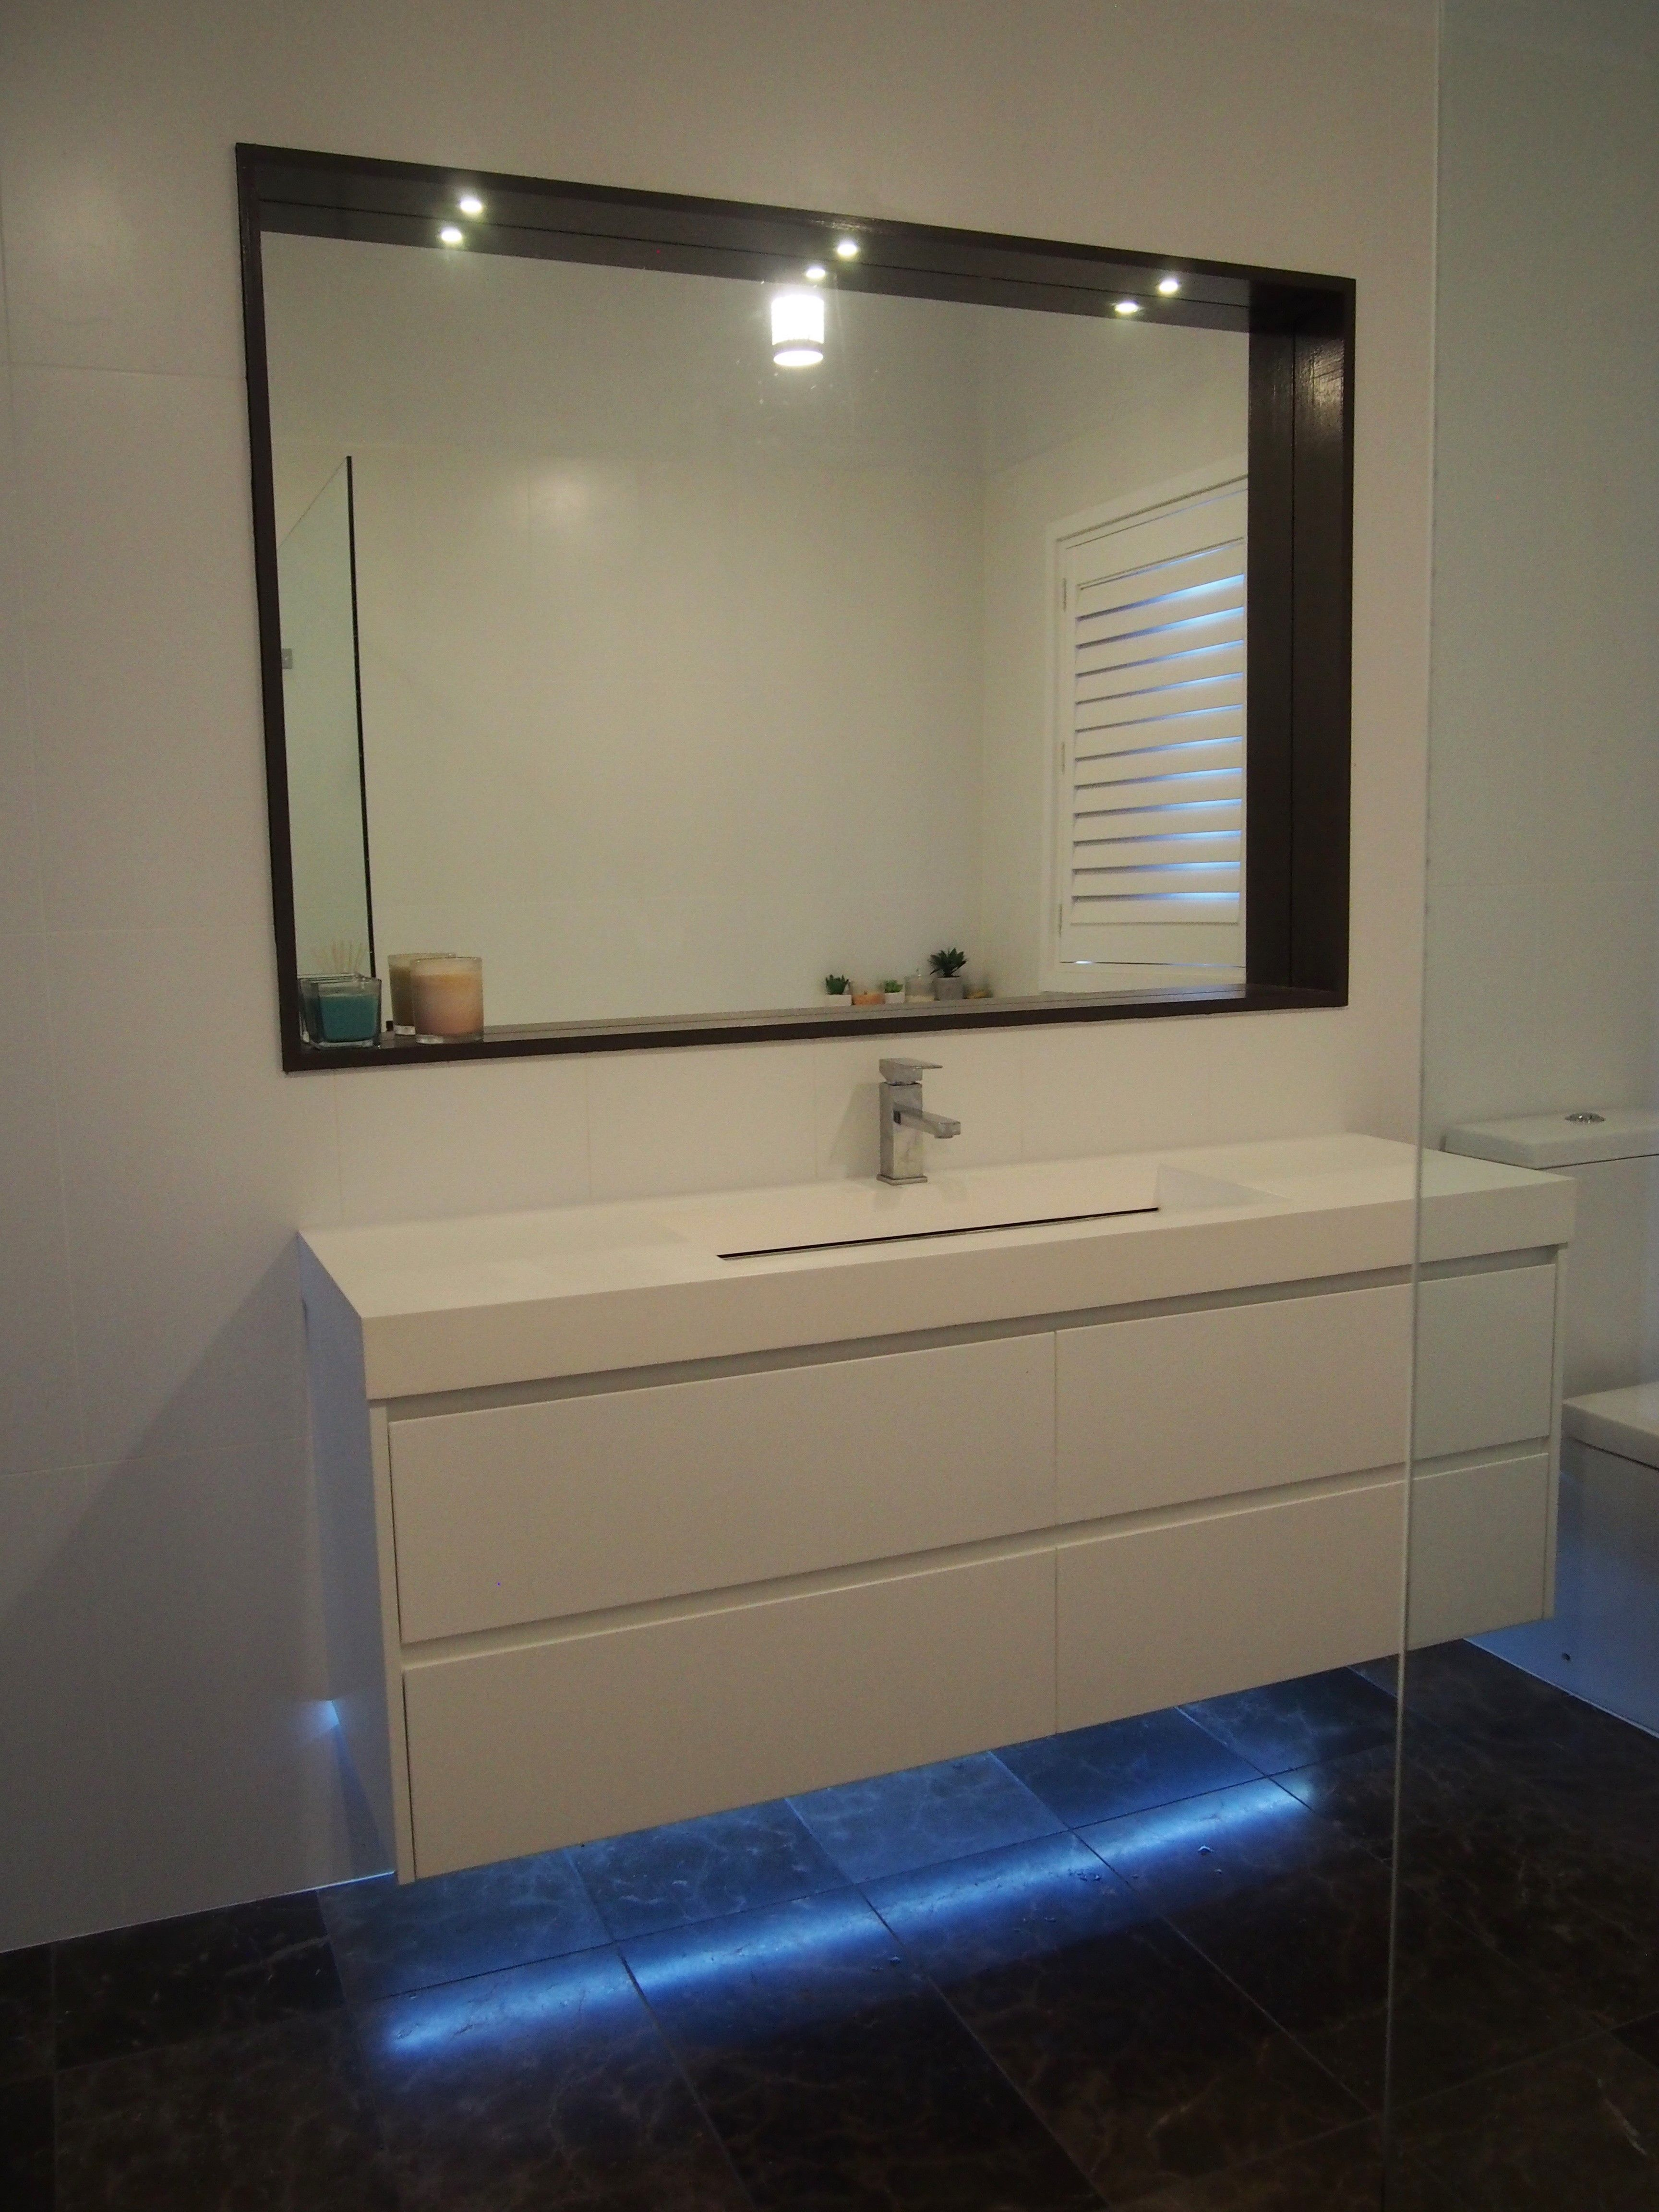 Bathroom Lighting Led Recessed Mirror Lights Under Vanity